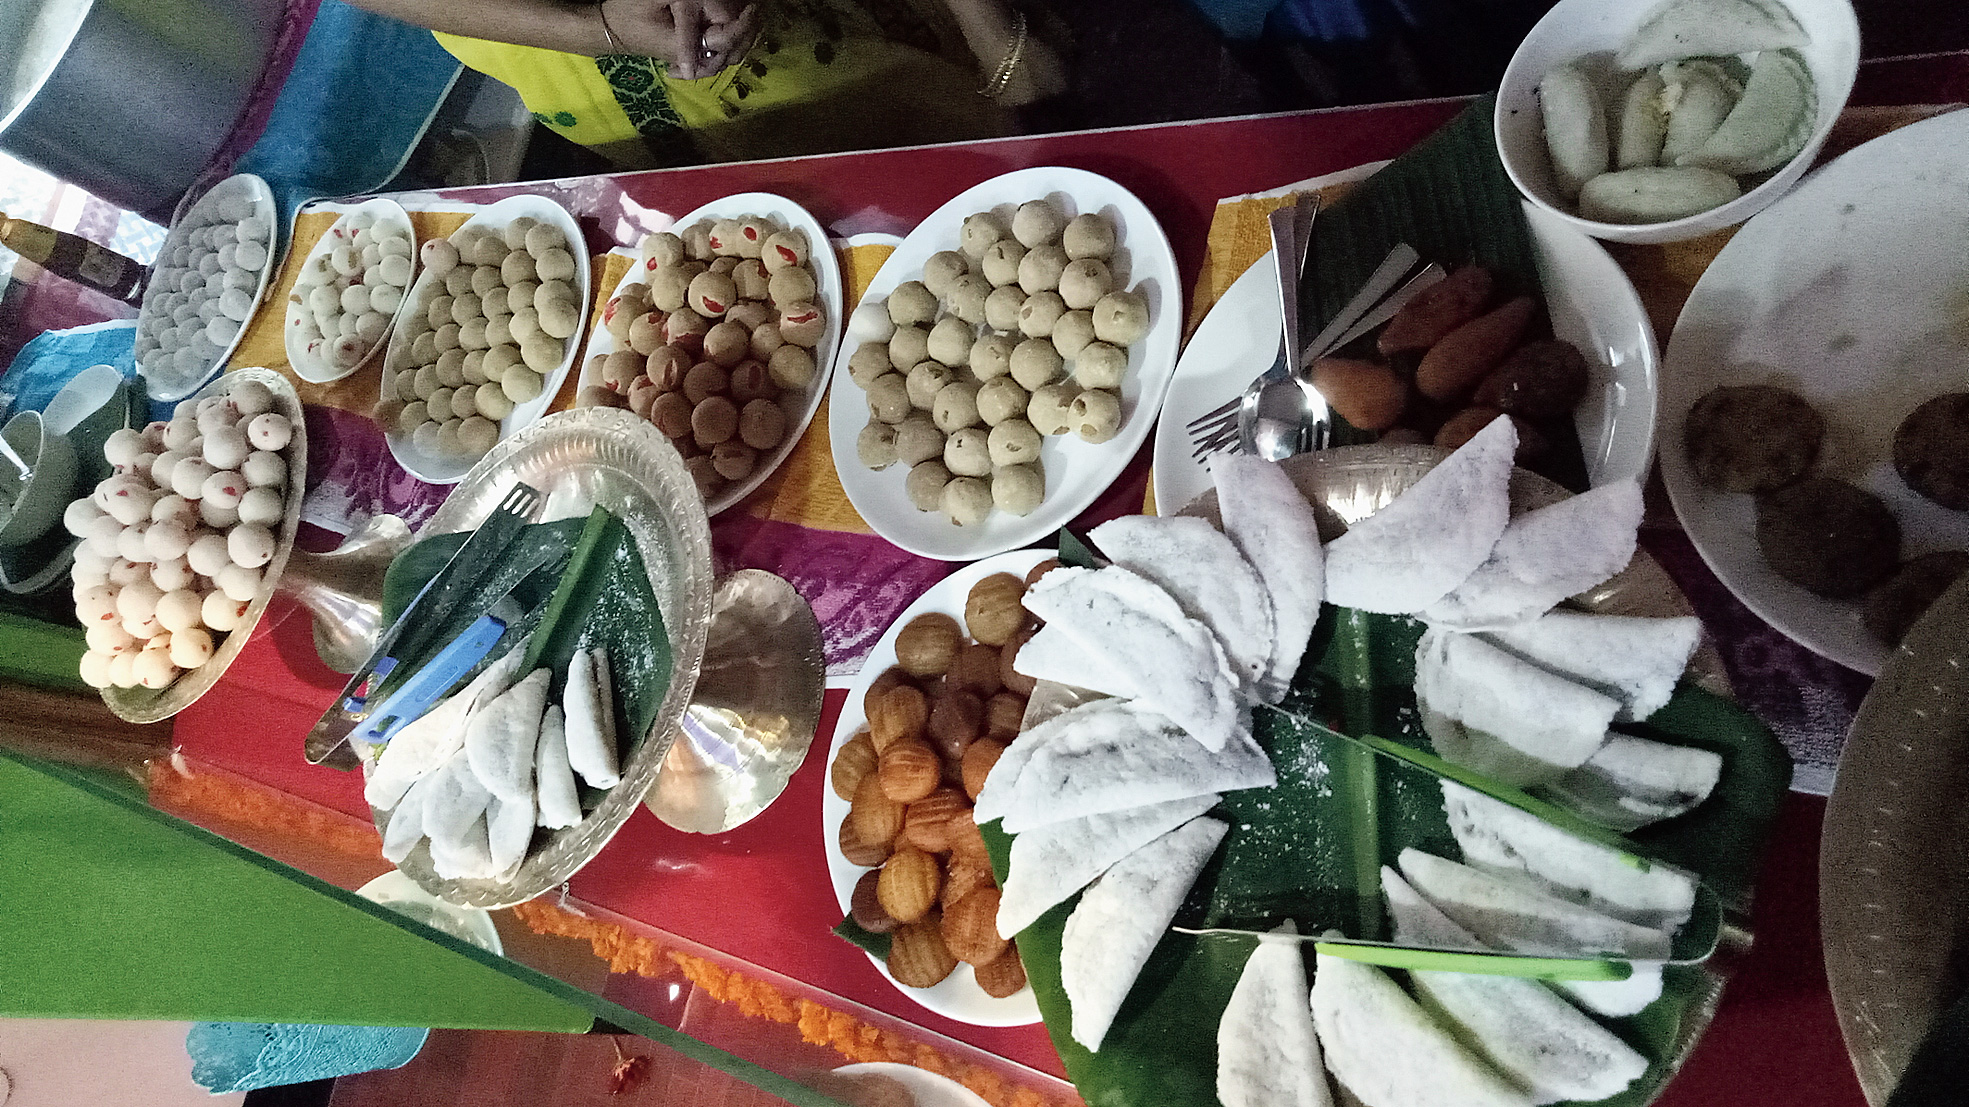 The food items being displayed at Bhogali Jalpan.